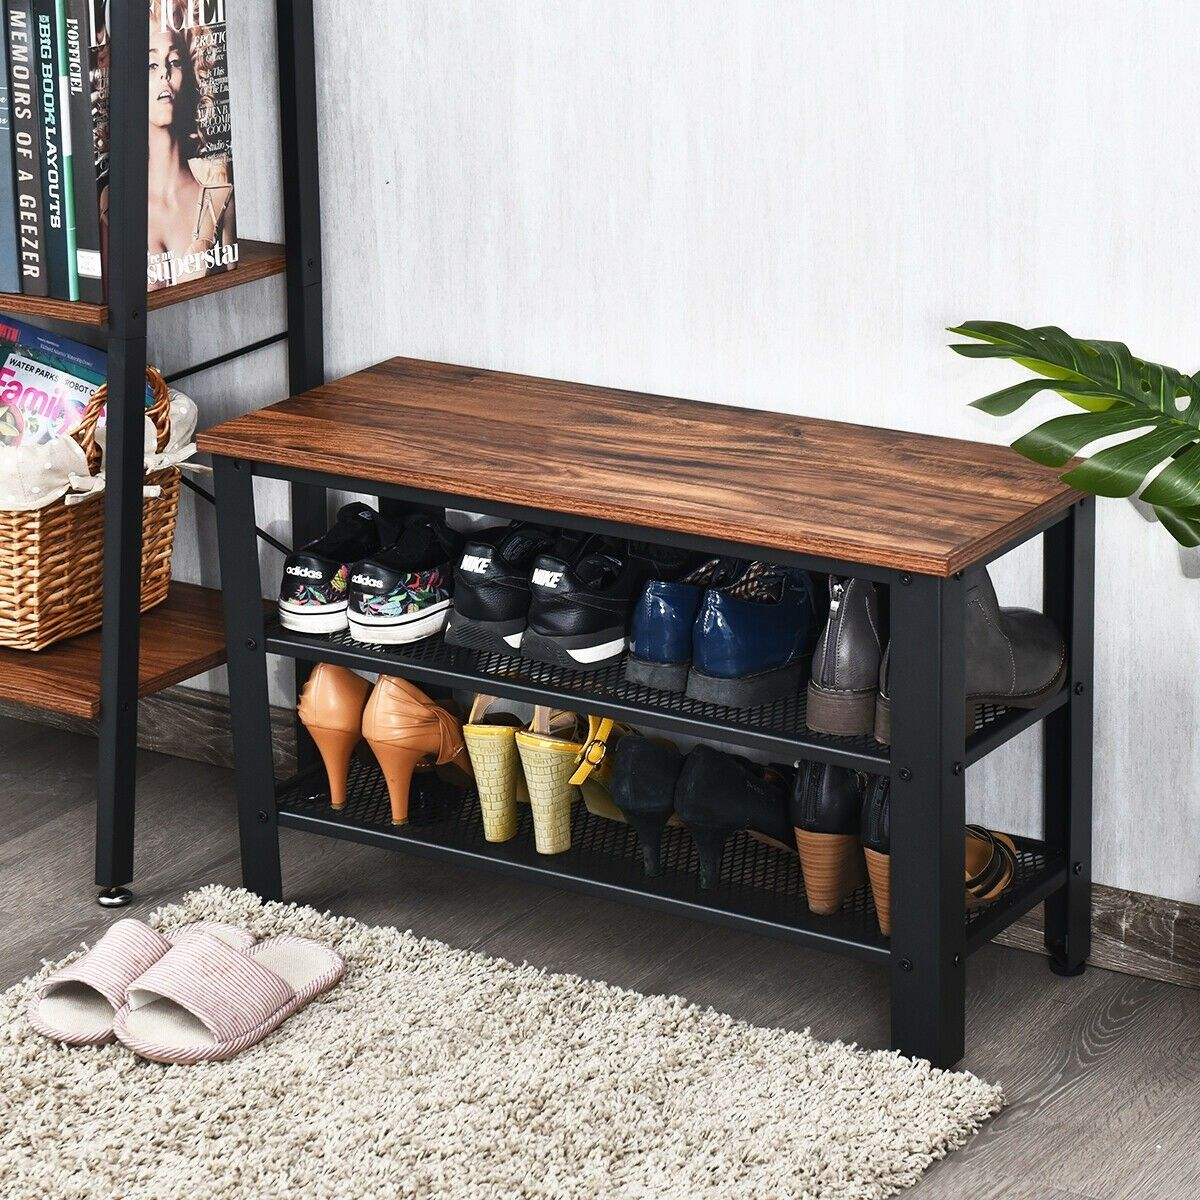 3-tier Shoe Rack Industrial Shoe Bench With Storage Shelves